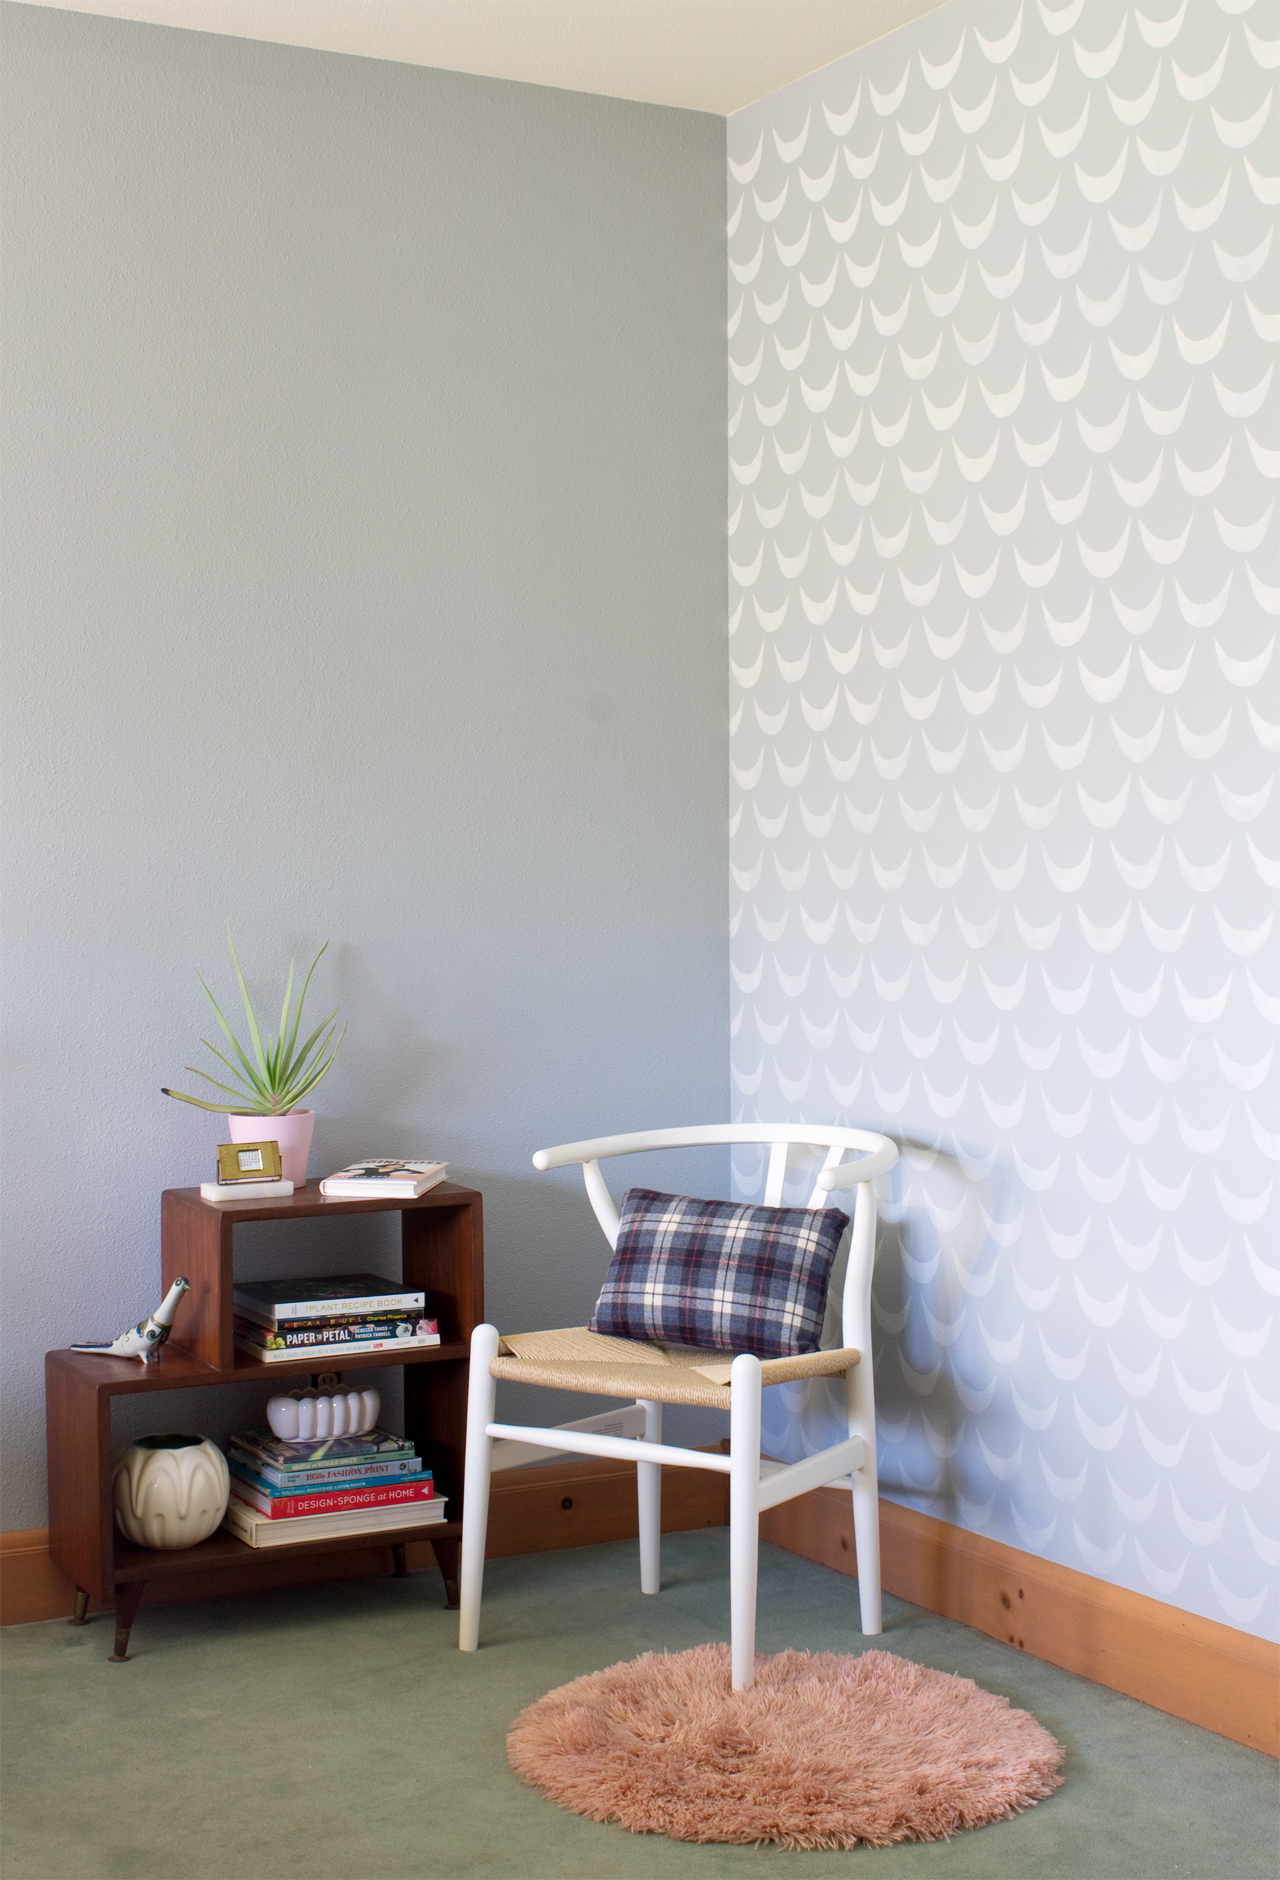 Bedroom Makeover: Paint and Stenciling